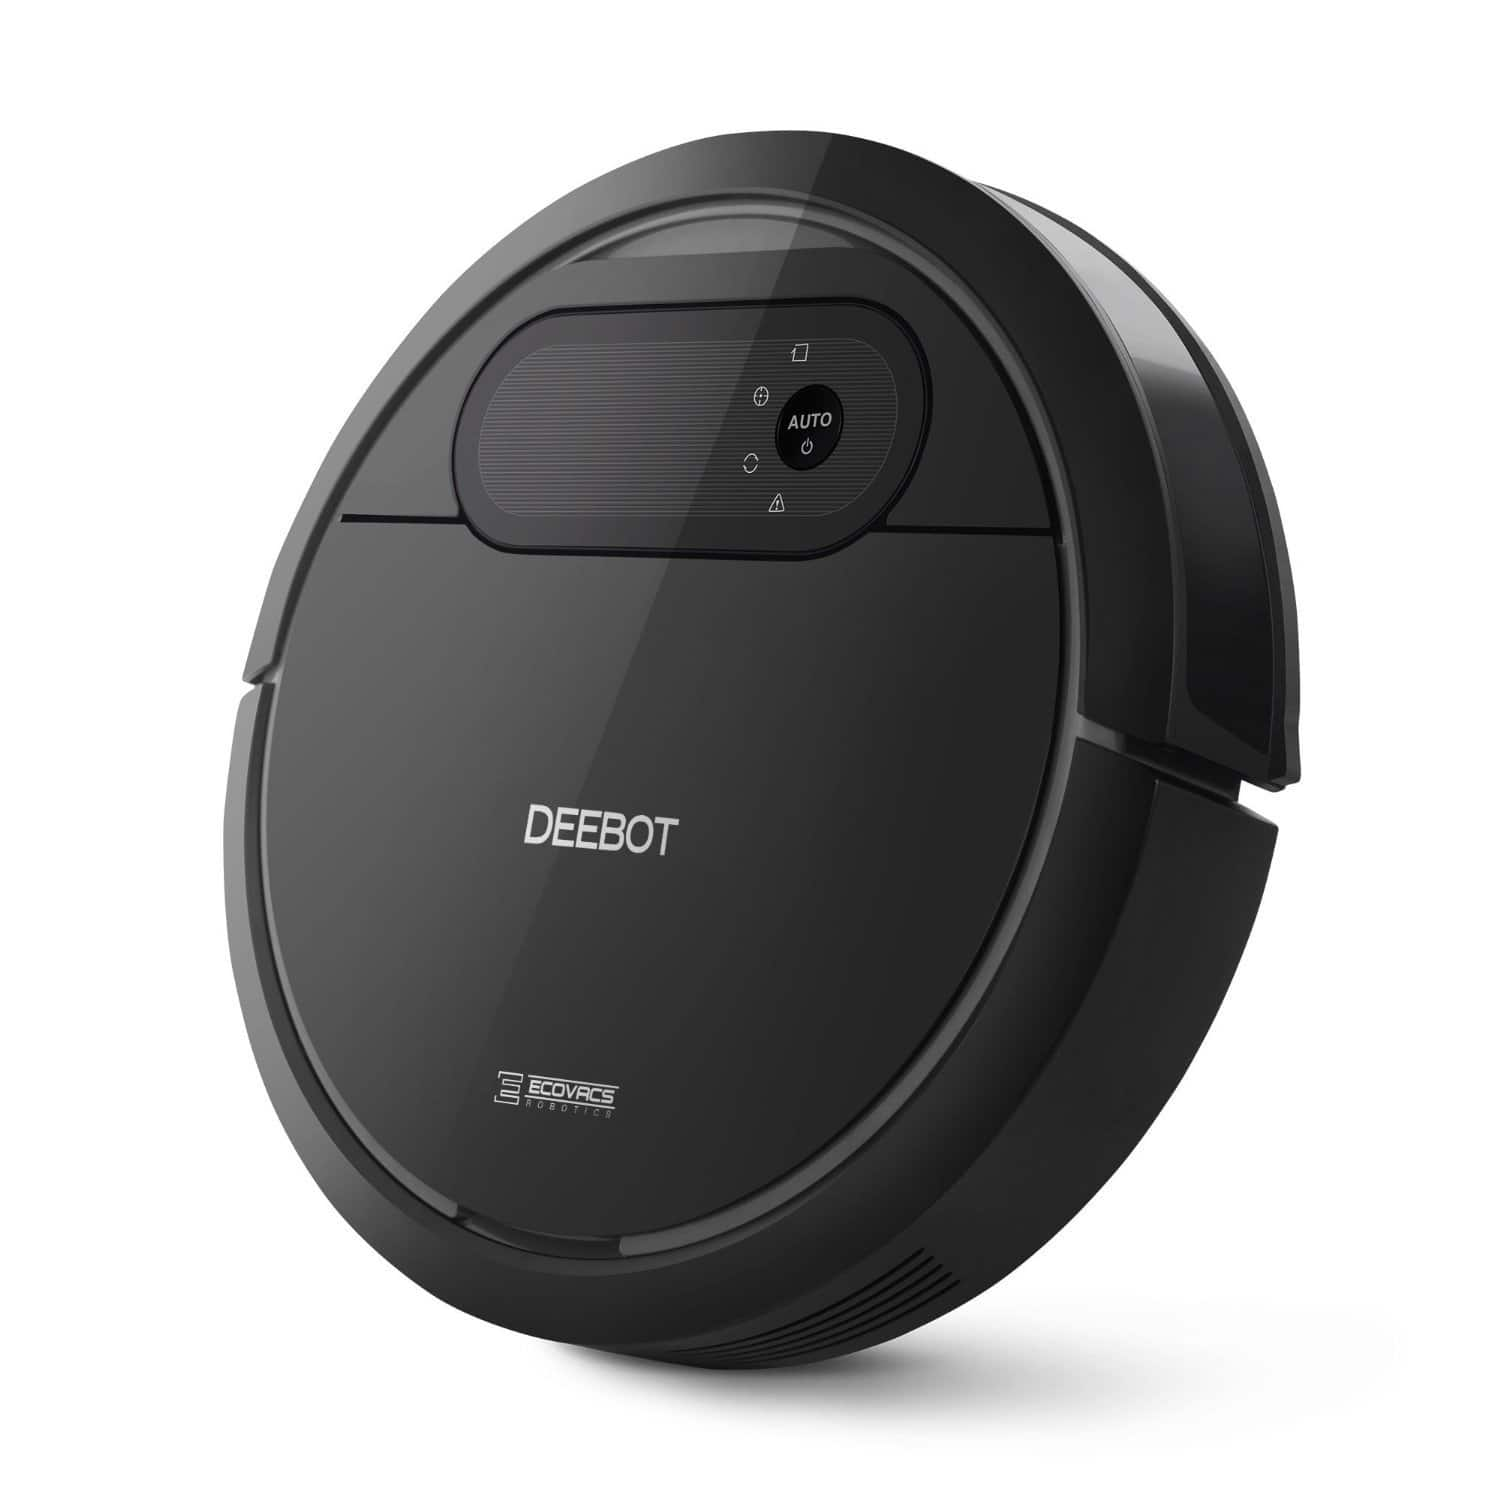 ECOVACS robotic vacuum cleaner $129.59 @ Amazon